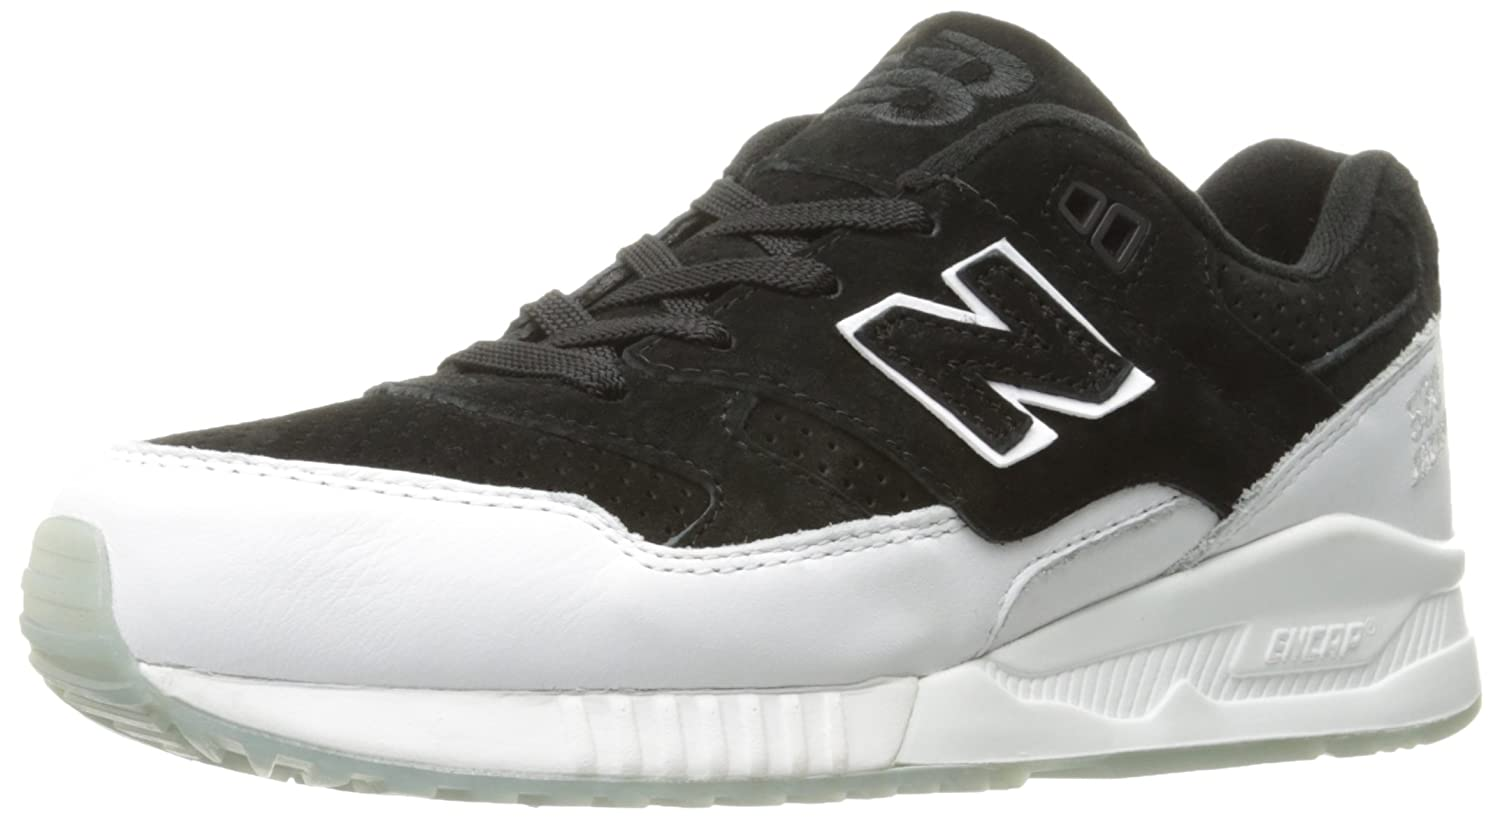 ab7a12a4e6 New Balance Men's 530 Summer Waves Collection Lifestyle Sneaker